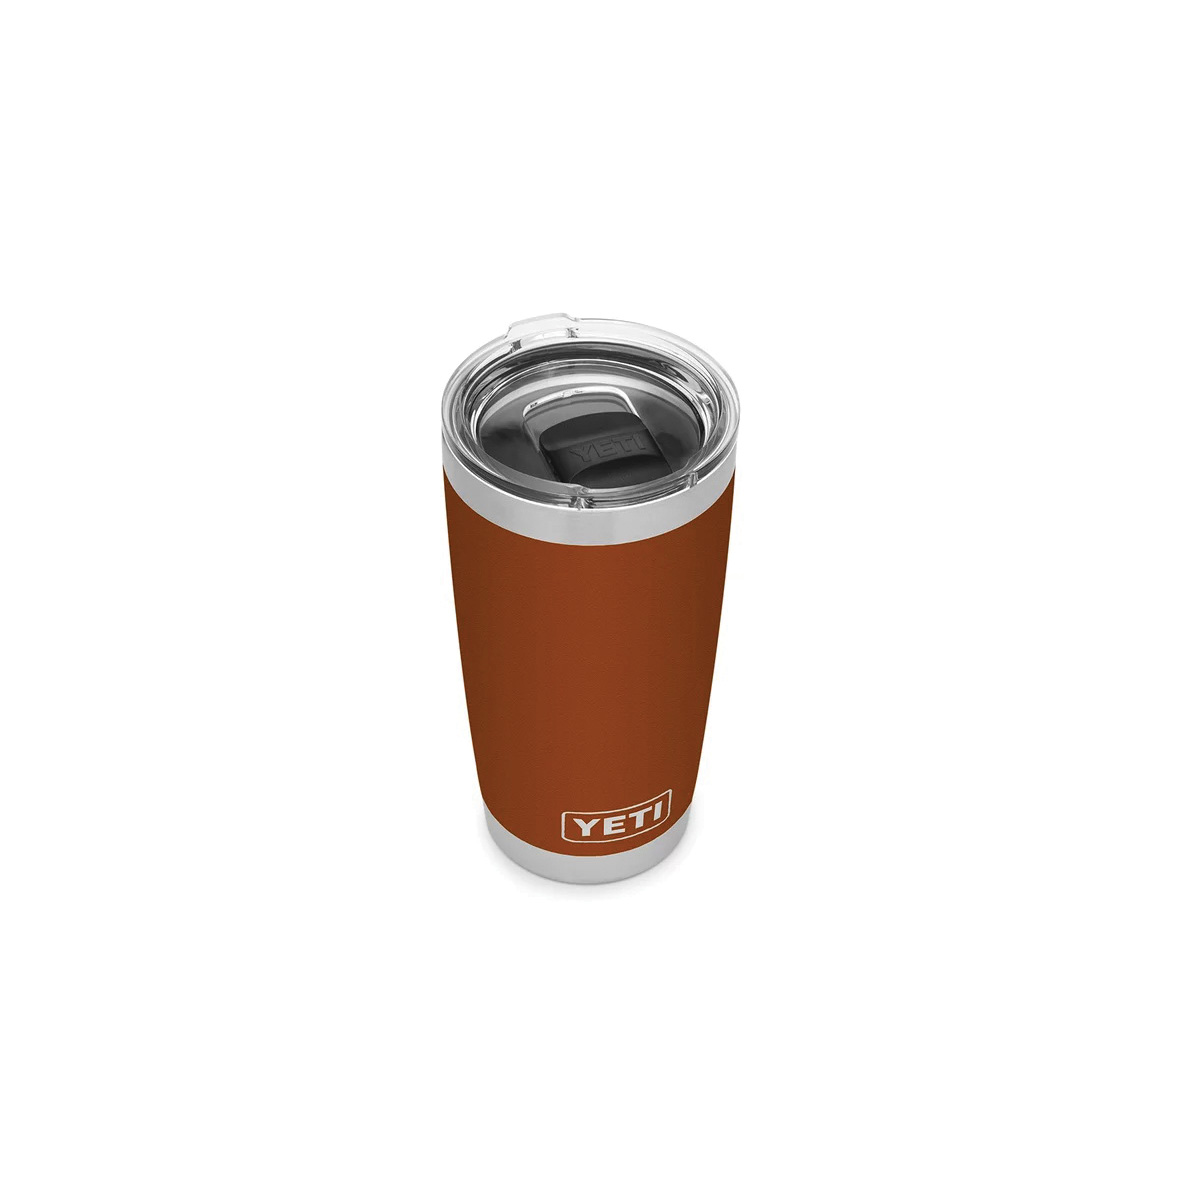 Picture of YETI Rambler 21070060058 Tumbler with Lid, 20 oz Capacity, MagSlider Lid, 18/8 Stainless Steel, Clay, Insulated